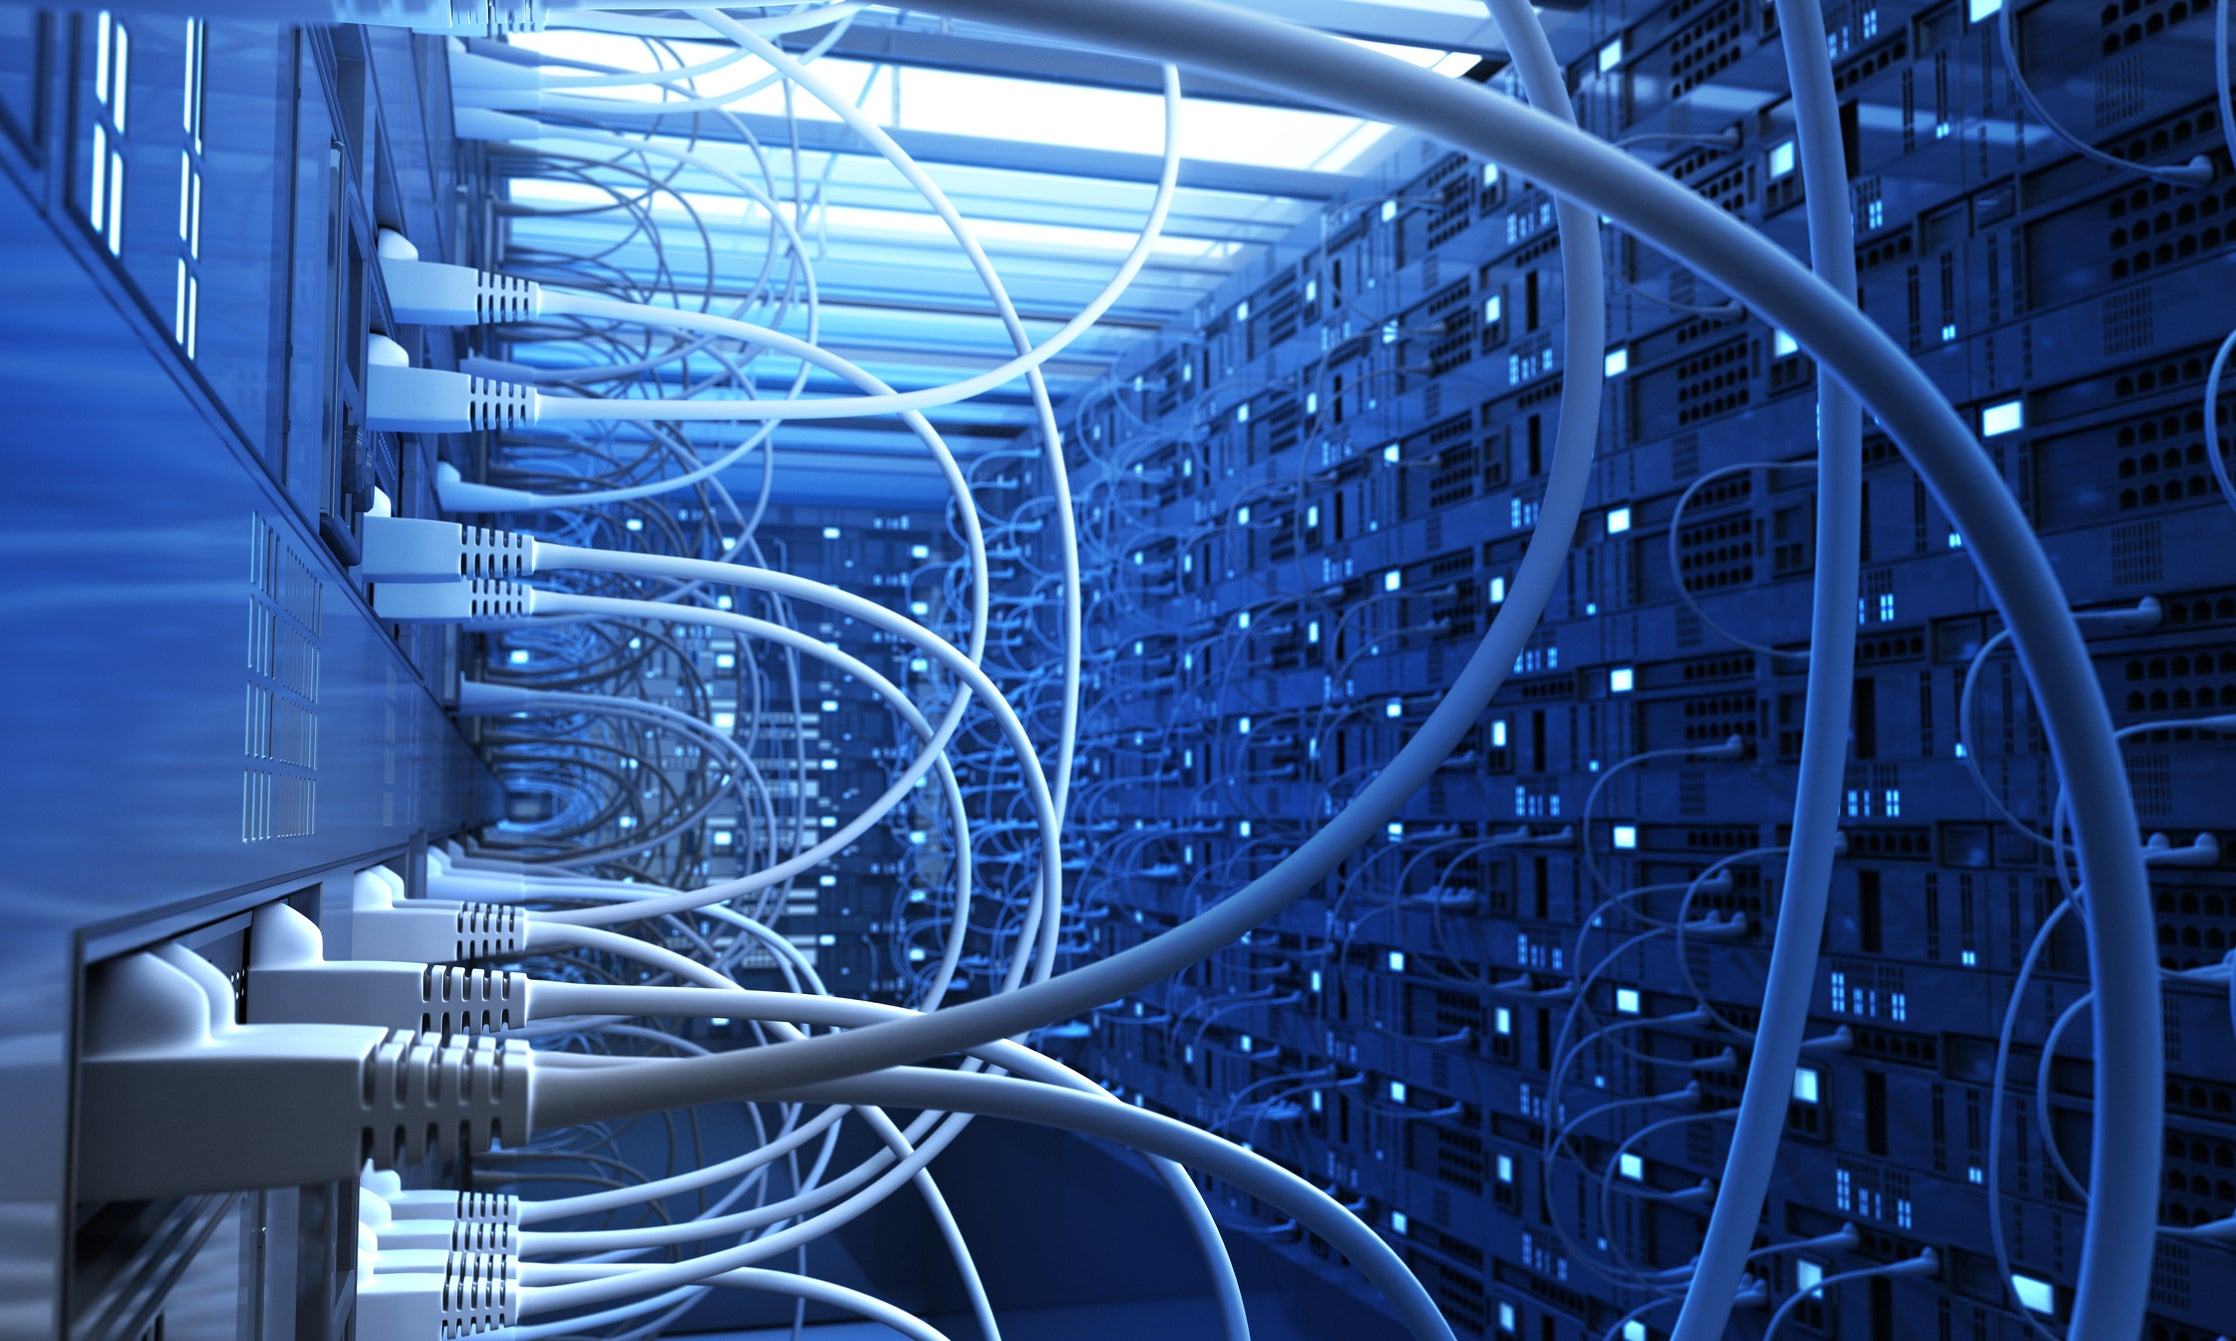 Photo of a data center cast in blue light with several power cords and cables connecting the stocks of routers and switches.